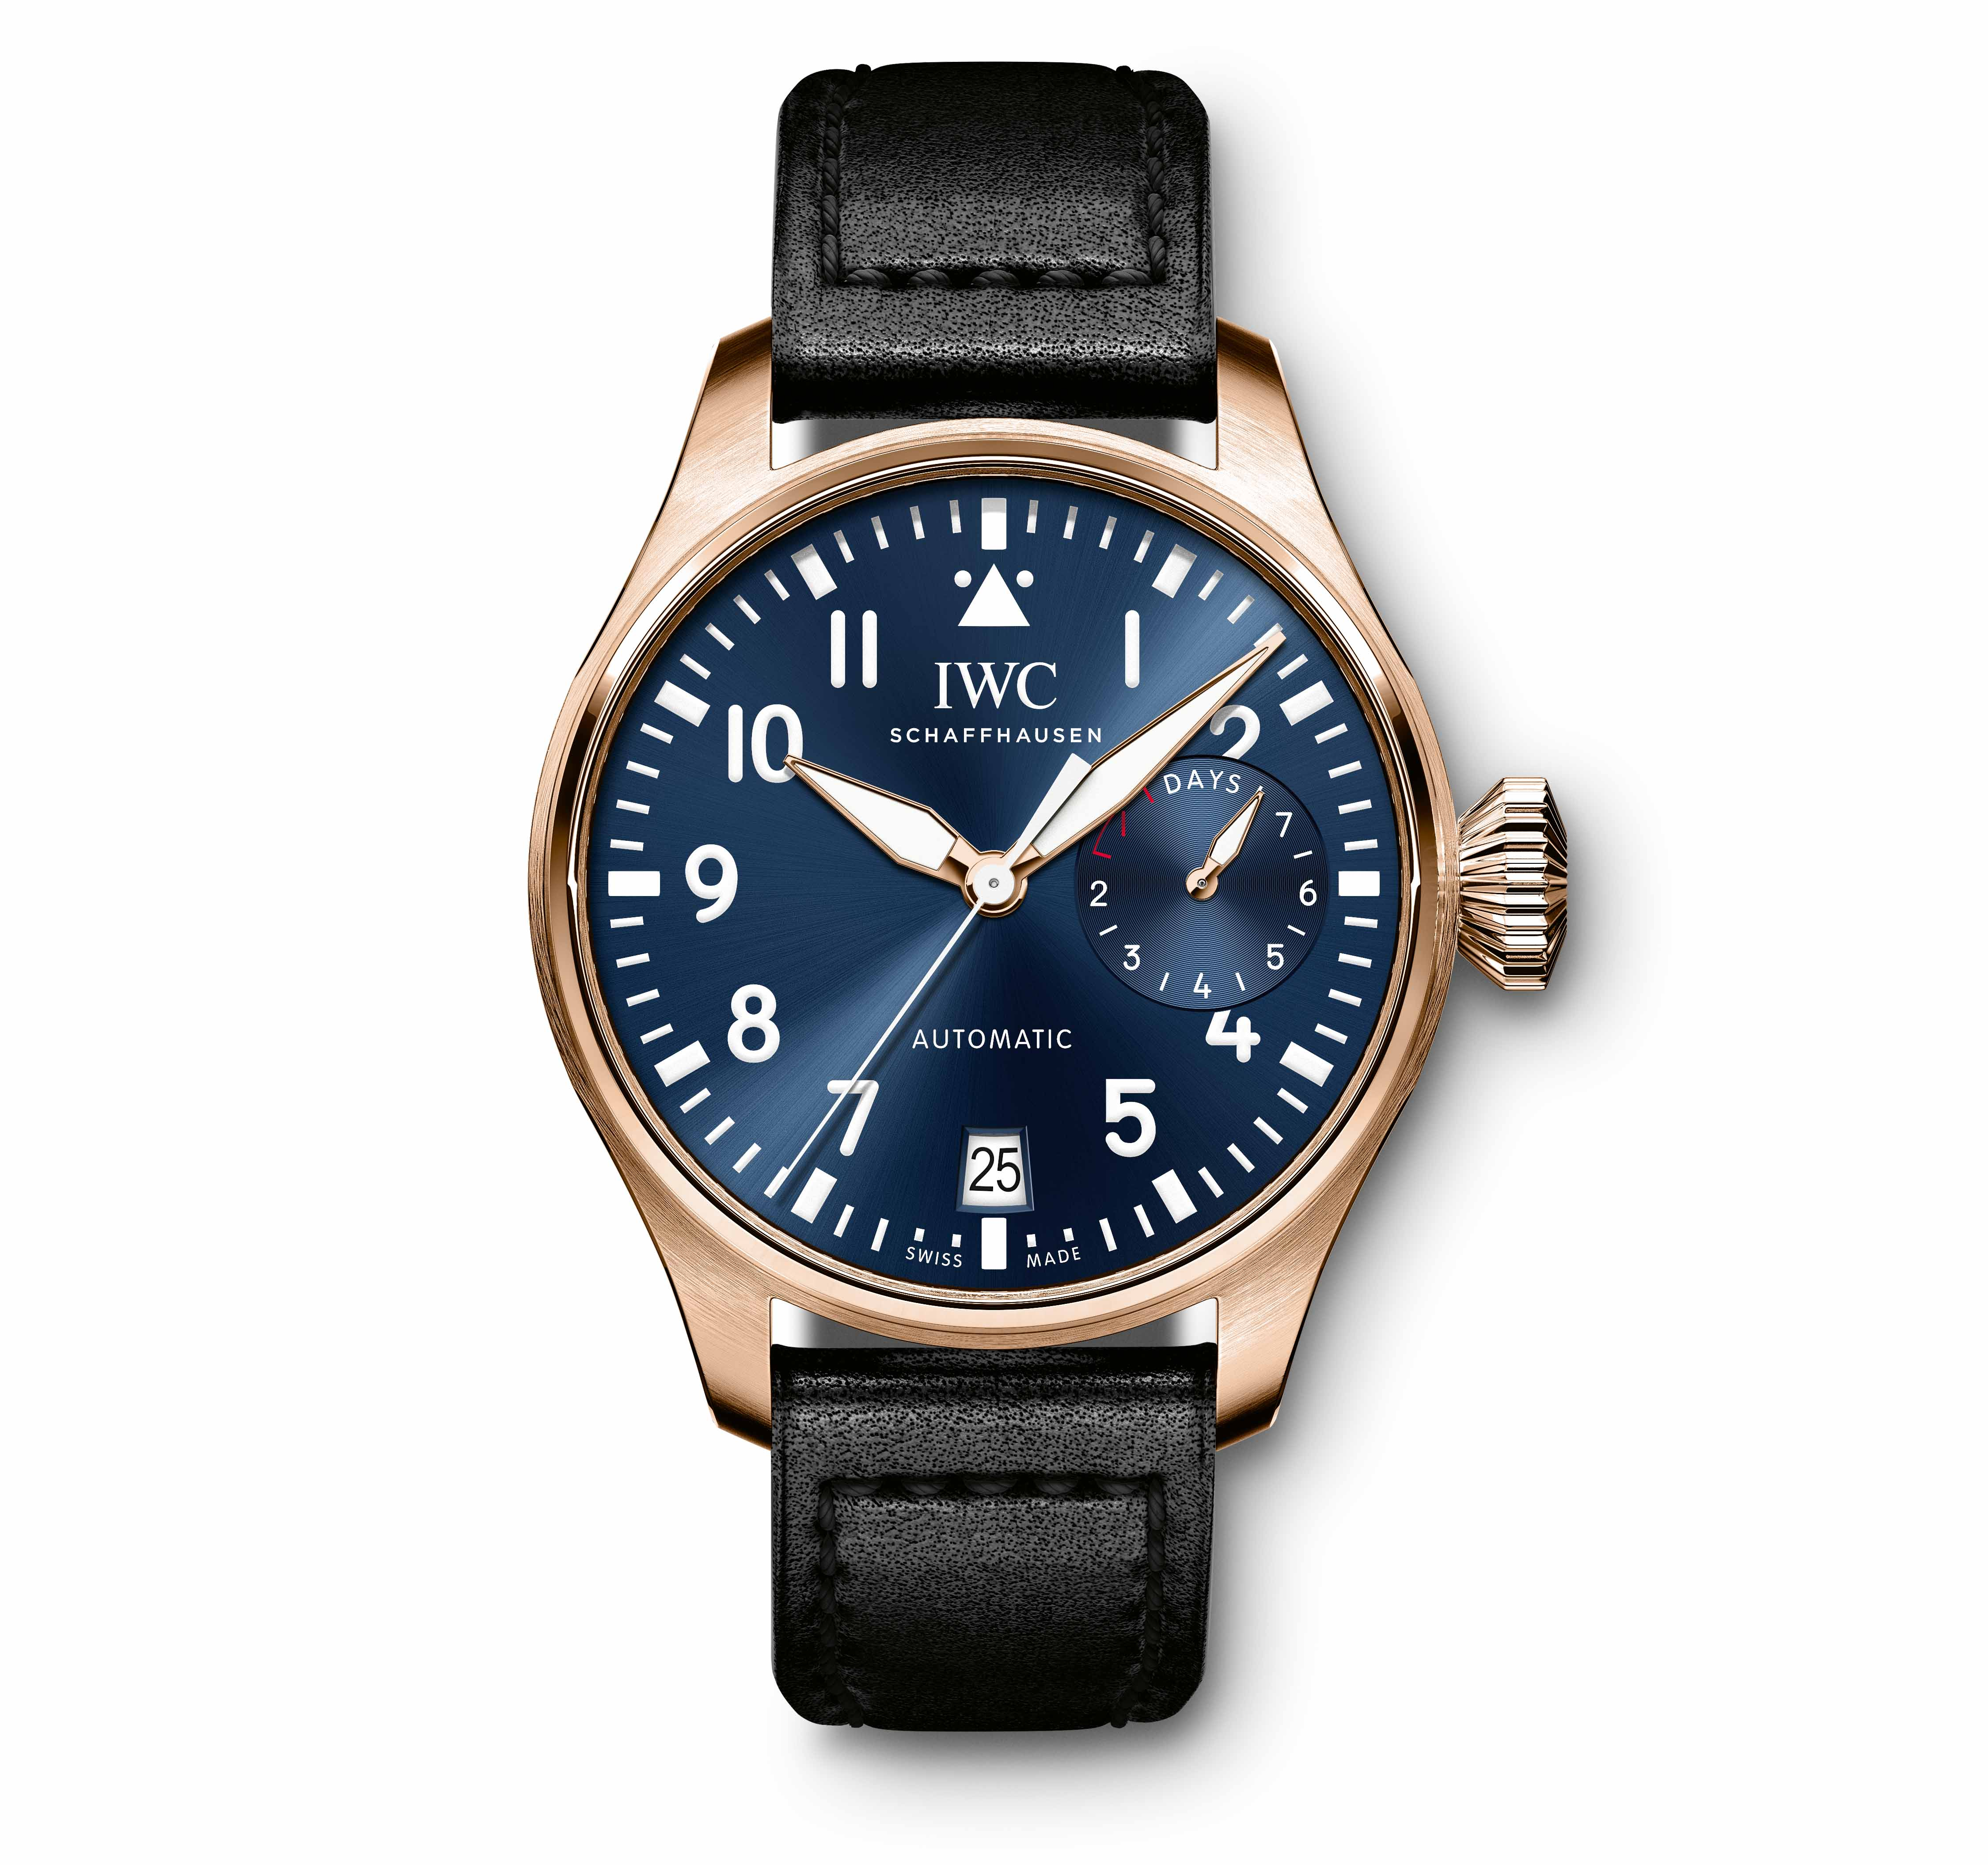 View full screen - View 1 of Lot 1. IWC SCHAFFHAUSEN    BIG PILOT, REF IW500923 single piece 5N gold wristwatch with date, power reserve and special engraving,  was worn by Bradley Cooper at the 91st Academy Awards®.